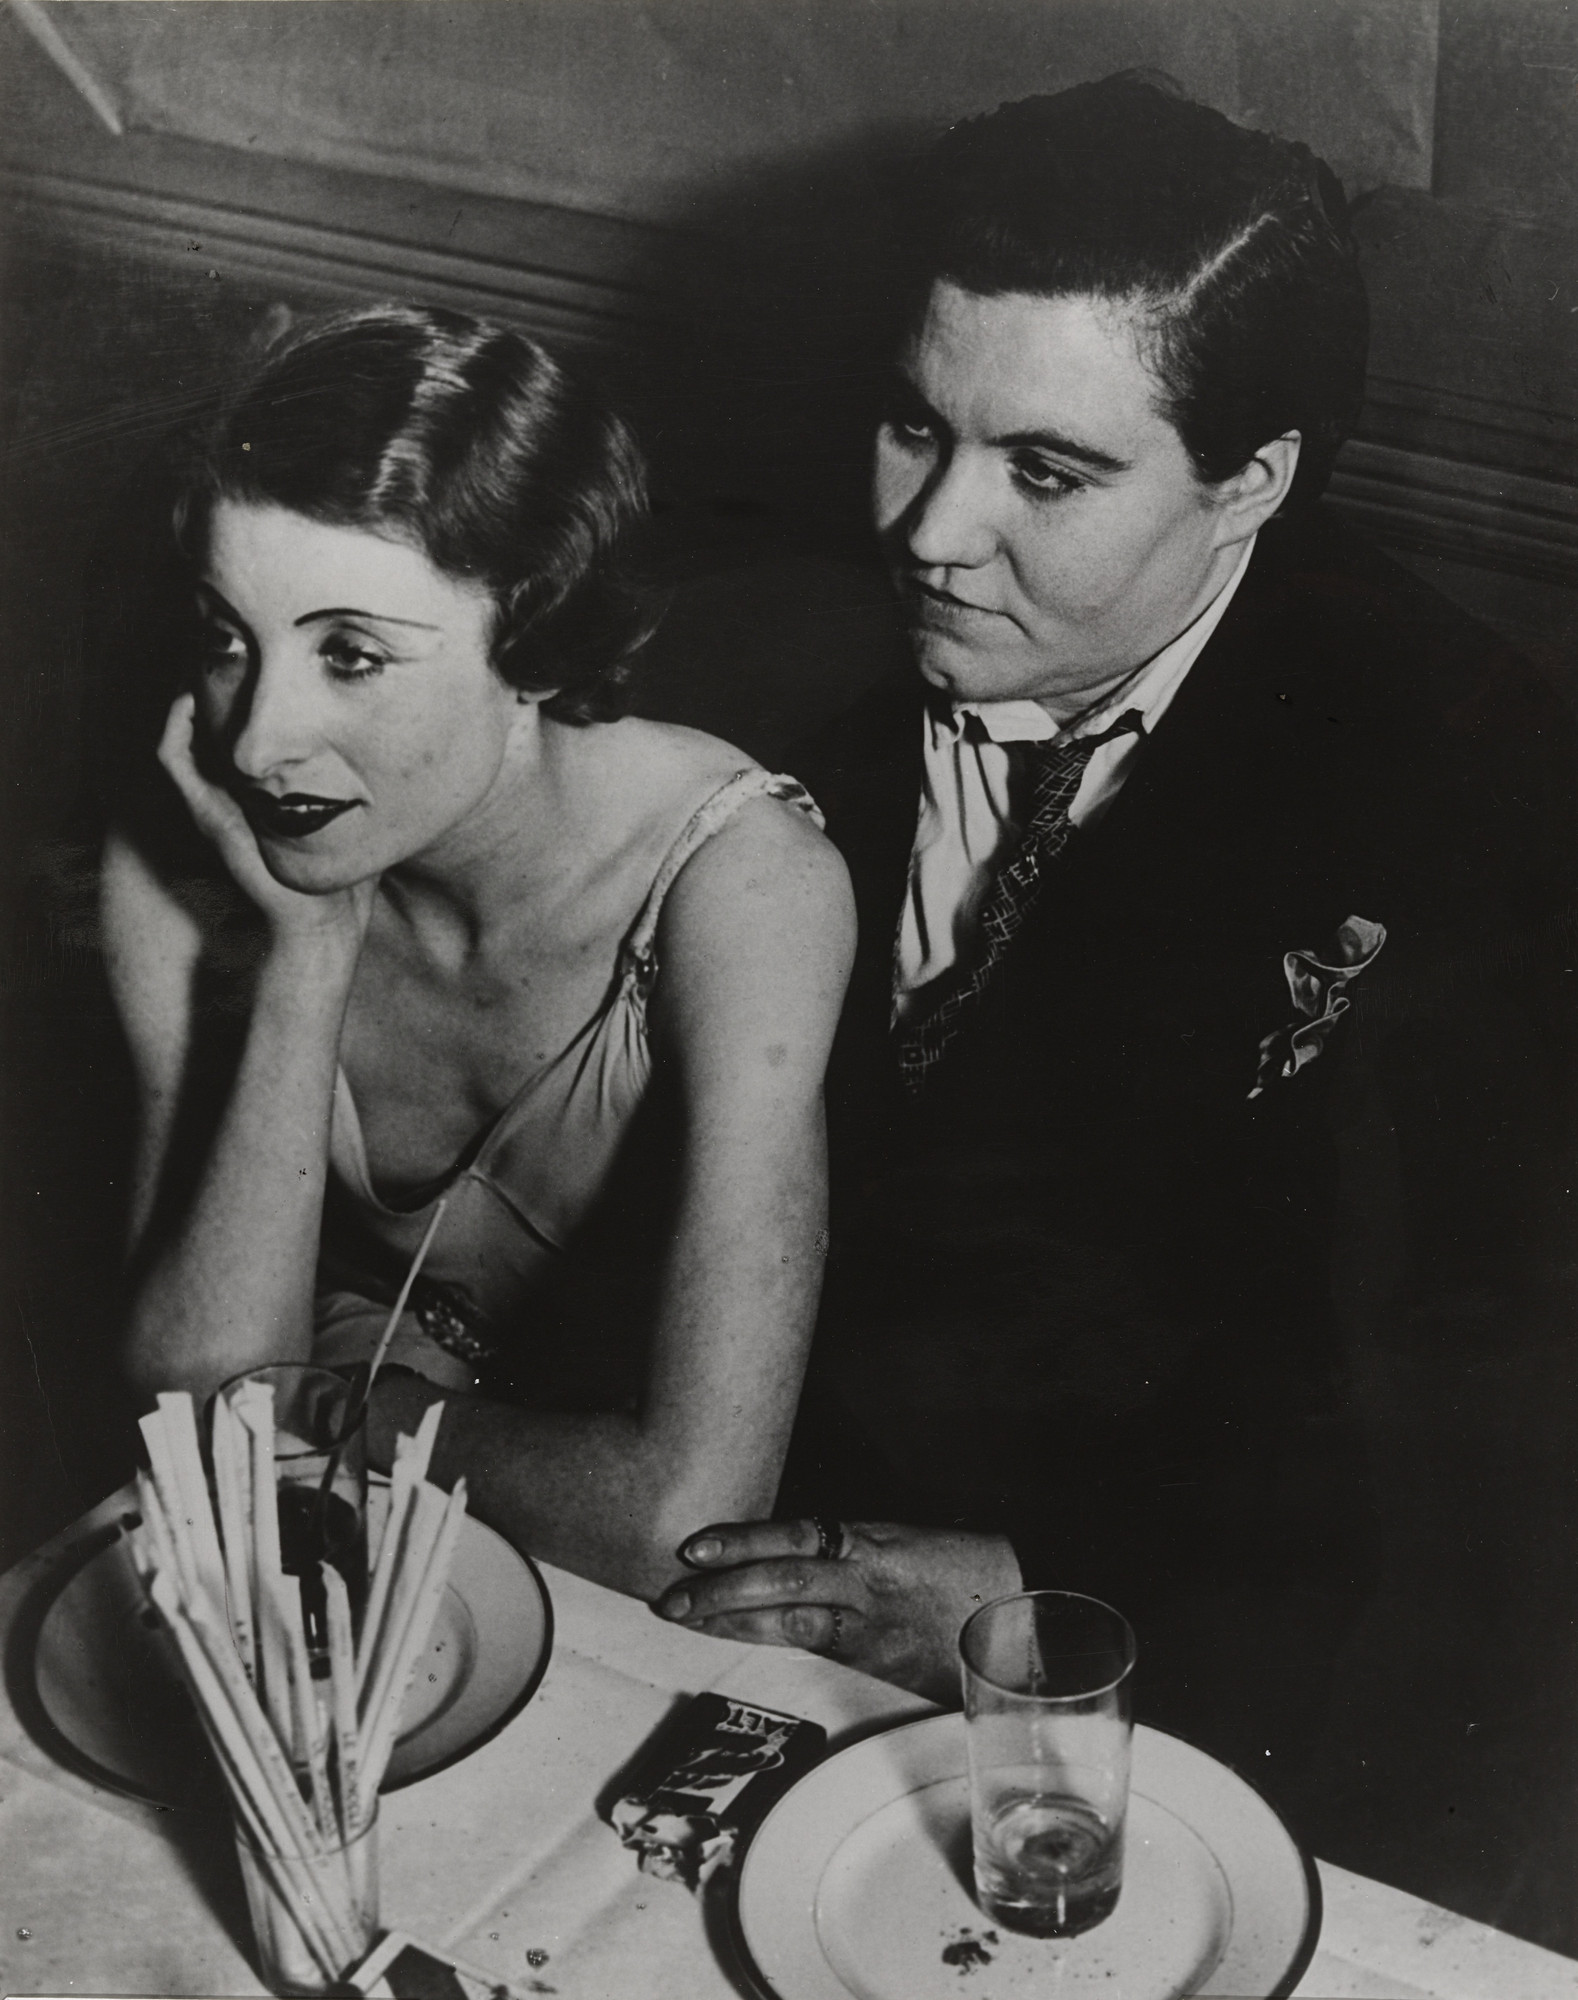 Brassaï (Gyula Halász). A Couple at Le Monocle, Paris. 1933